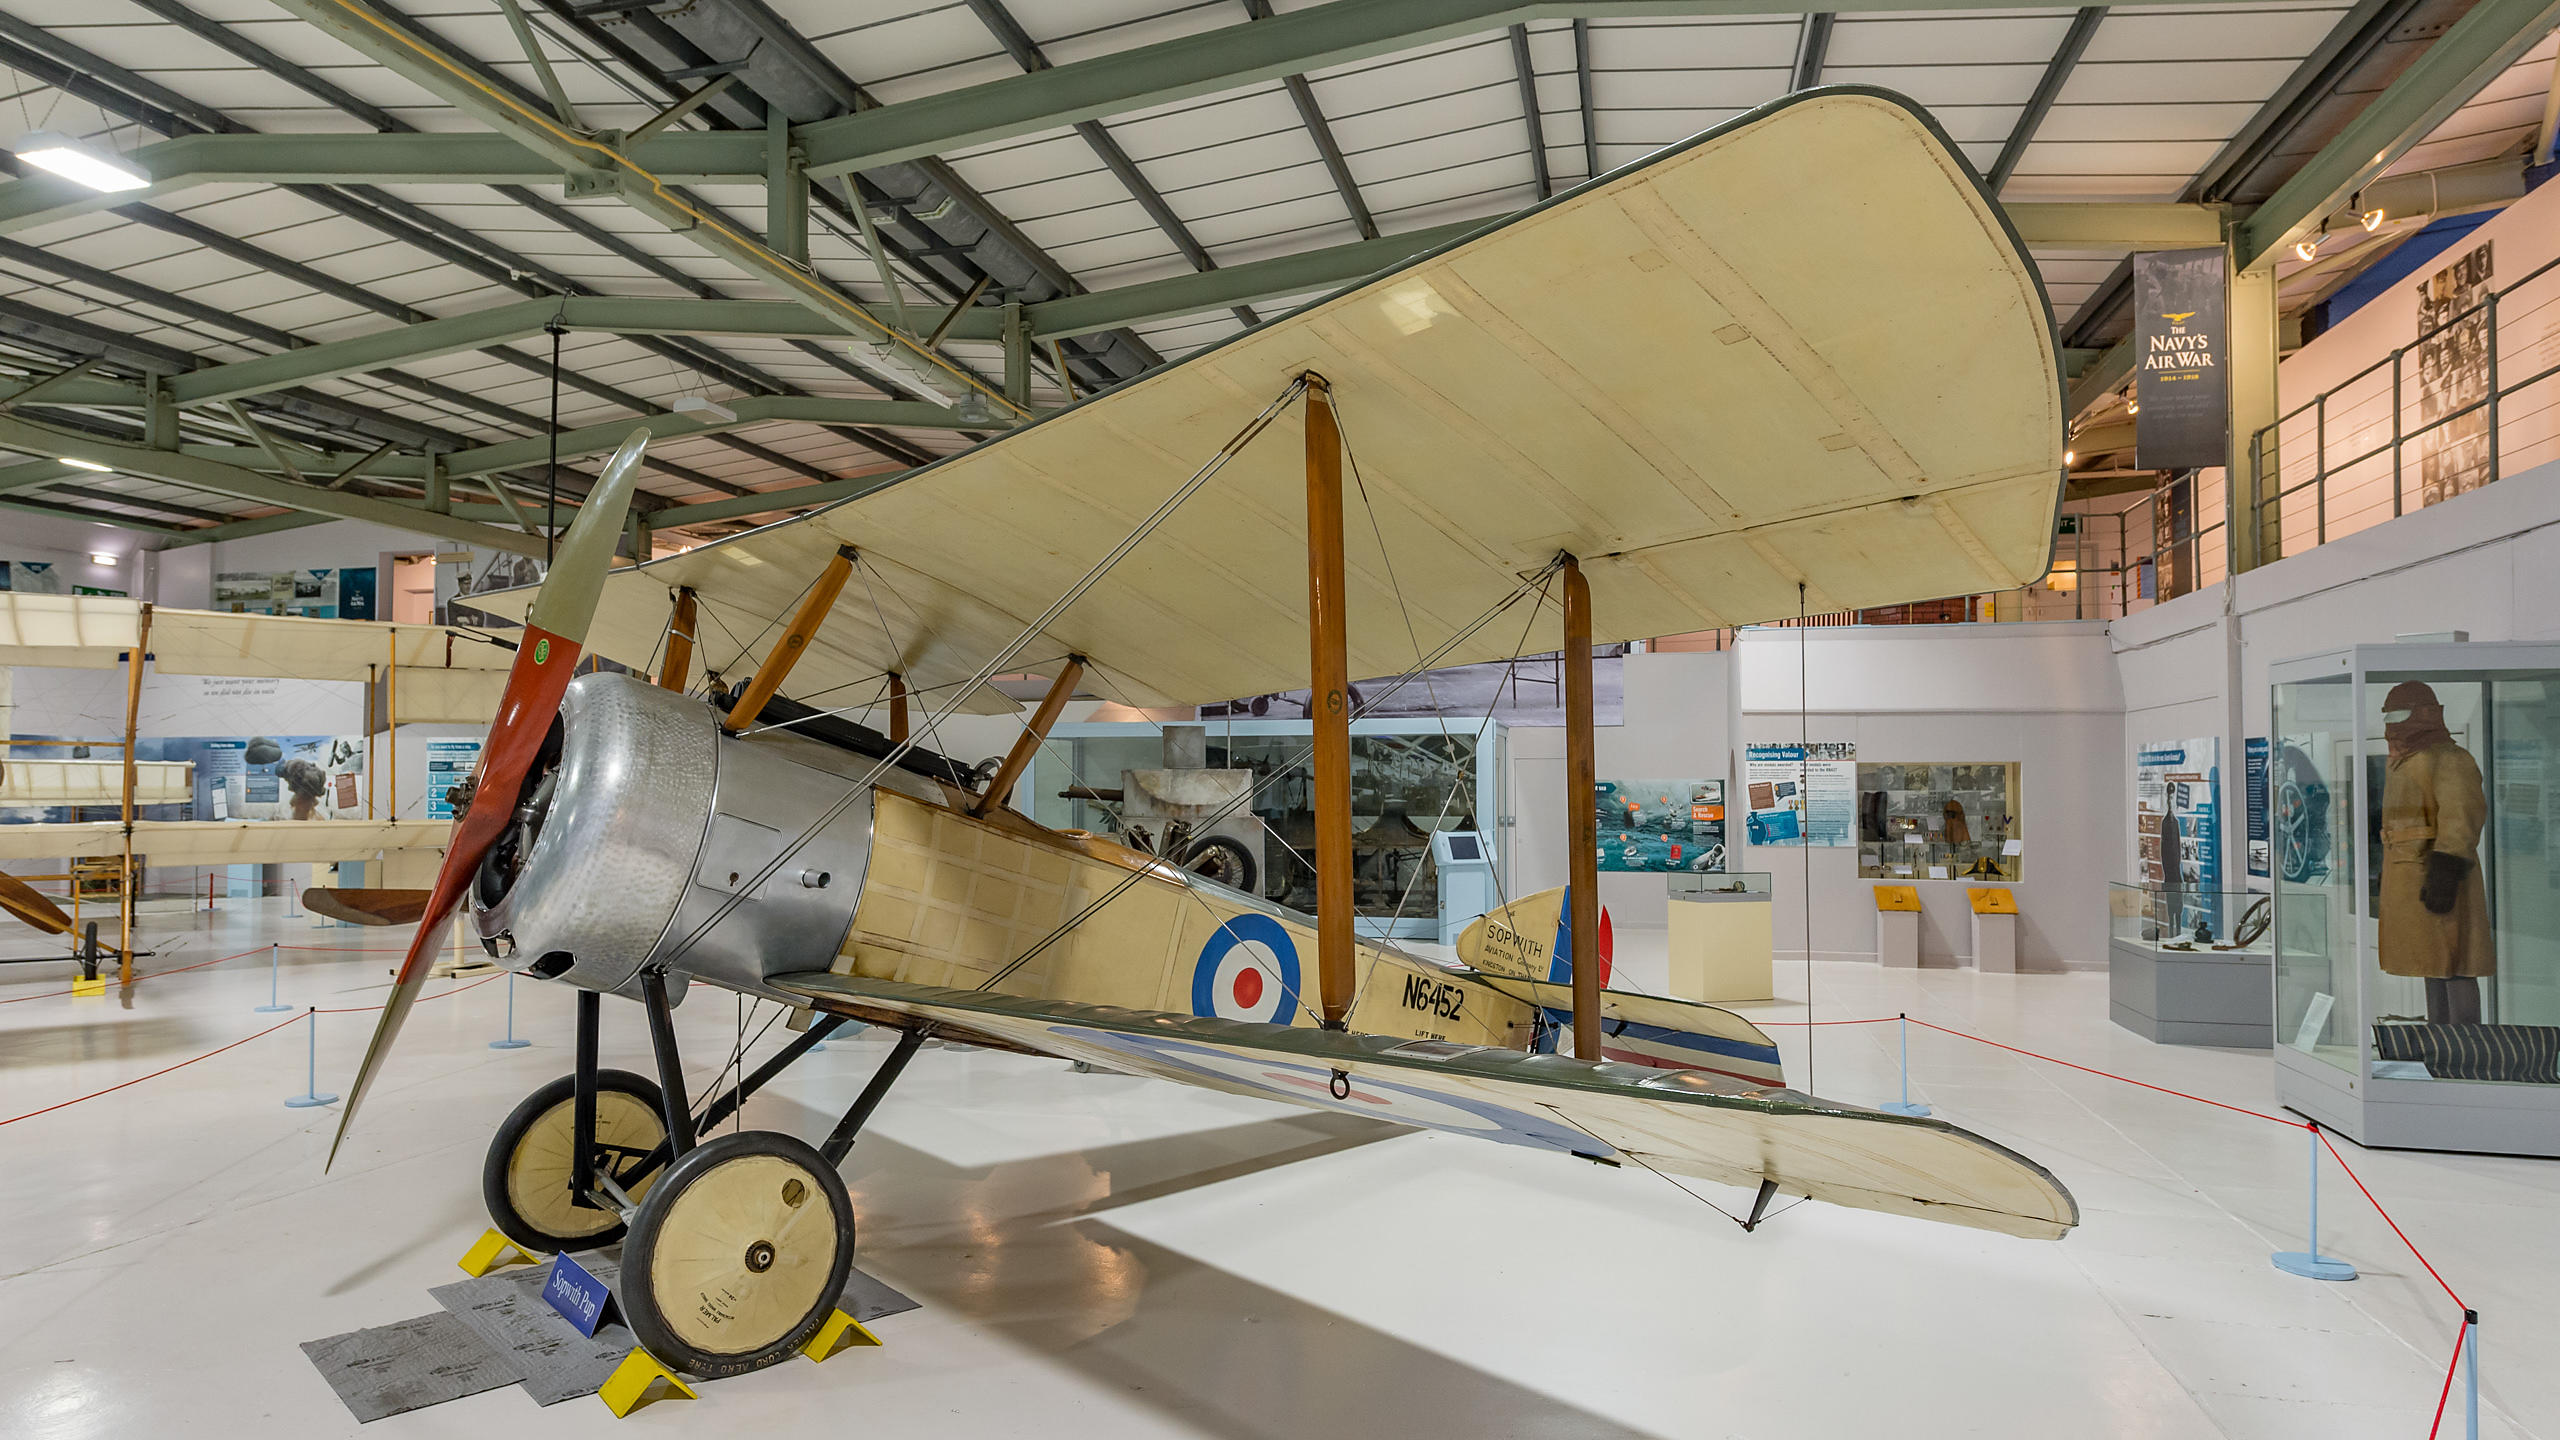 Sopwith Pup Aeroplane at the Fleet Air Arm Museum,